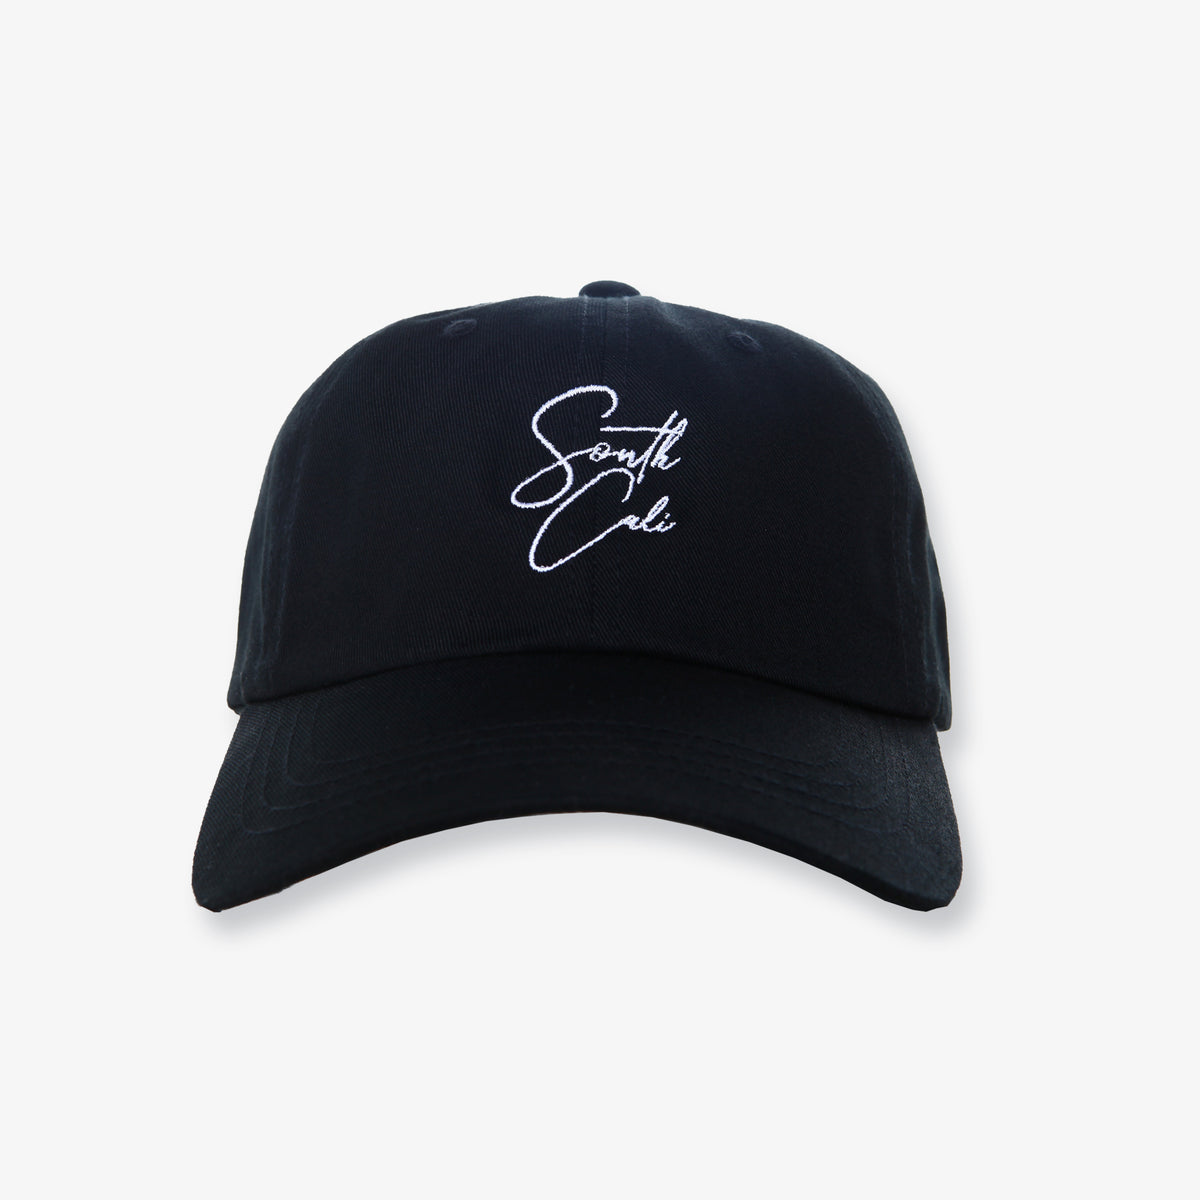 South Cali Dad Hat - Black